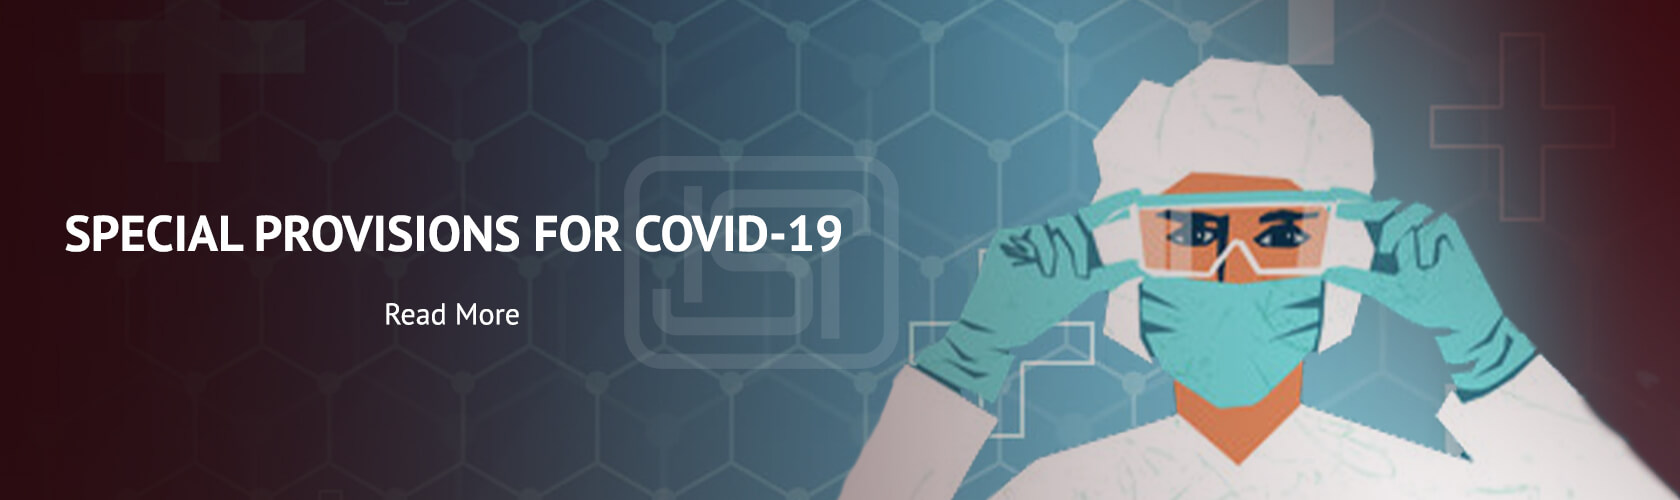 984924151Special Provisions for Covid-19